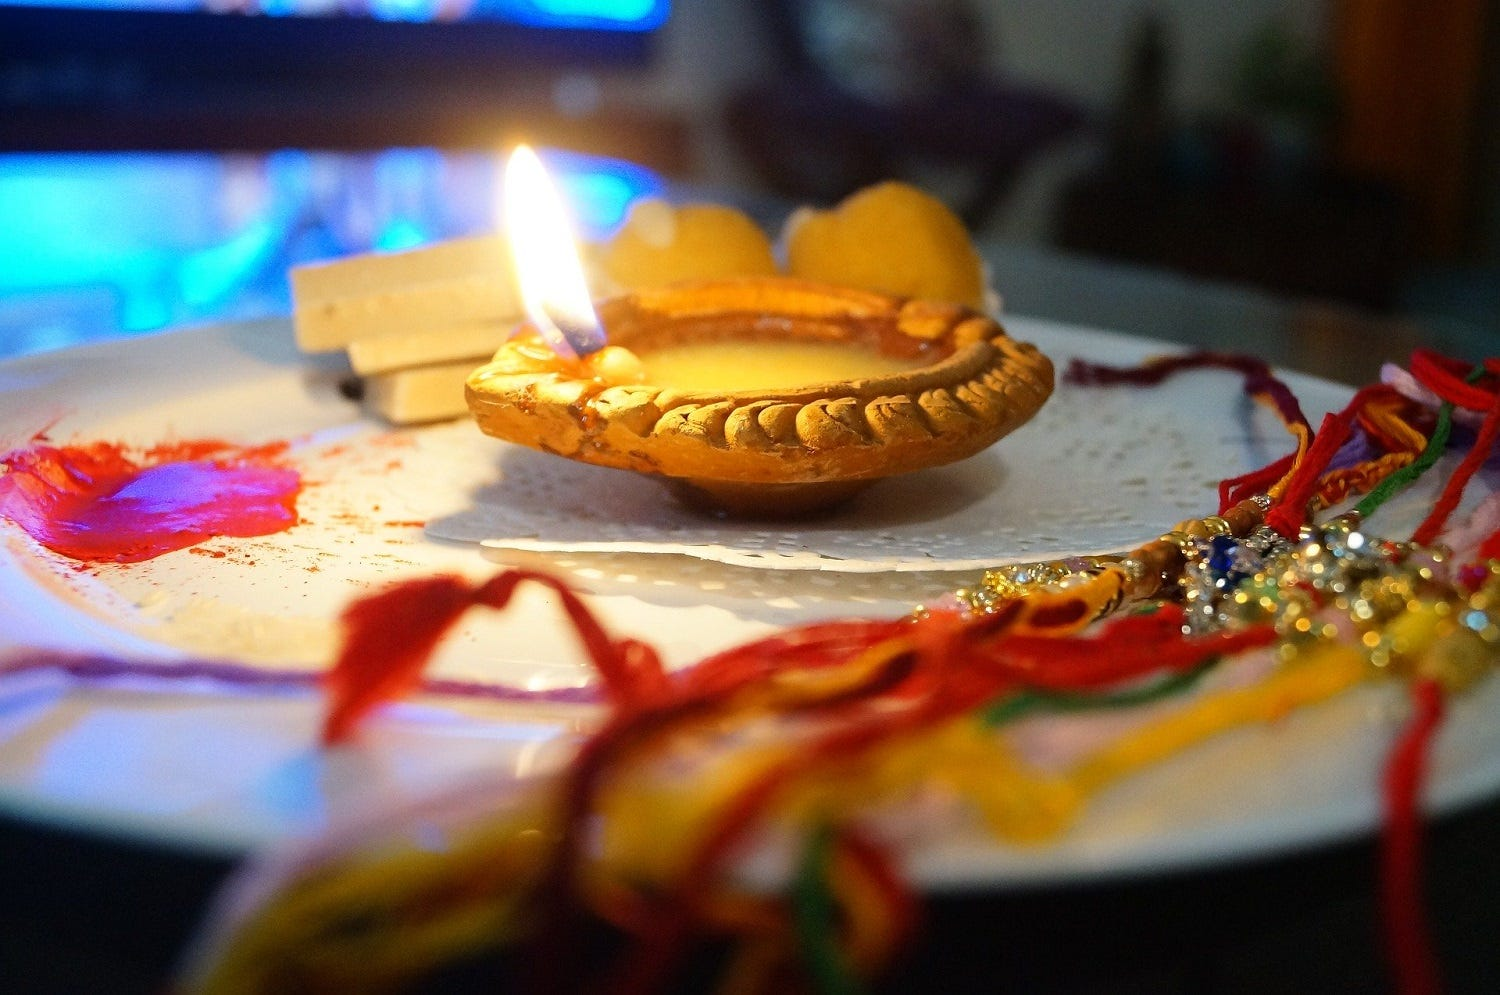 How to Celebrate Raksha Bandhan Festival This Year?